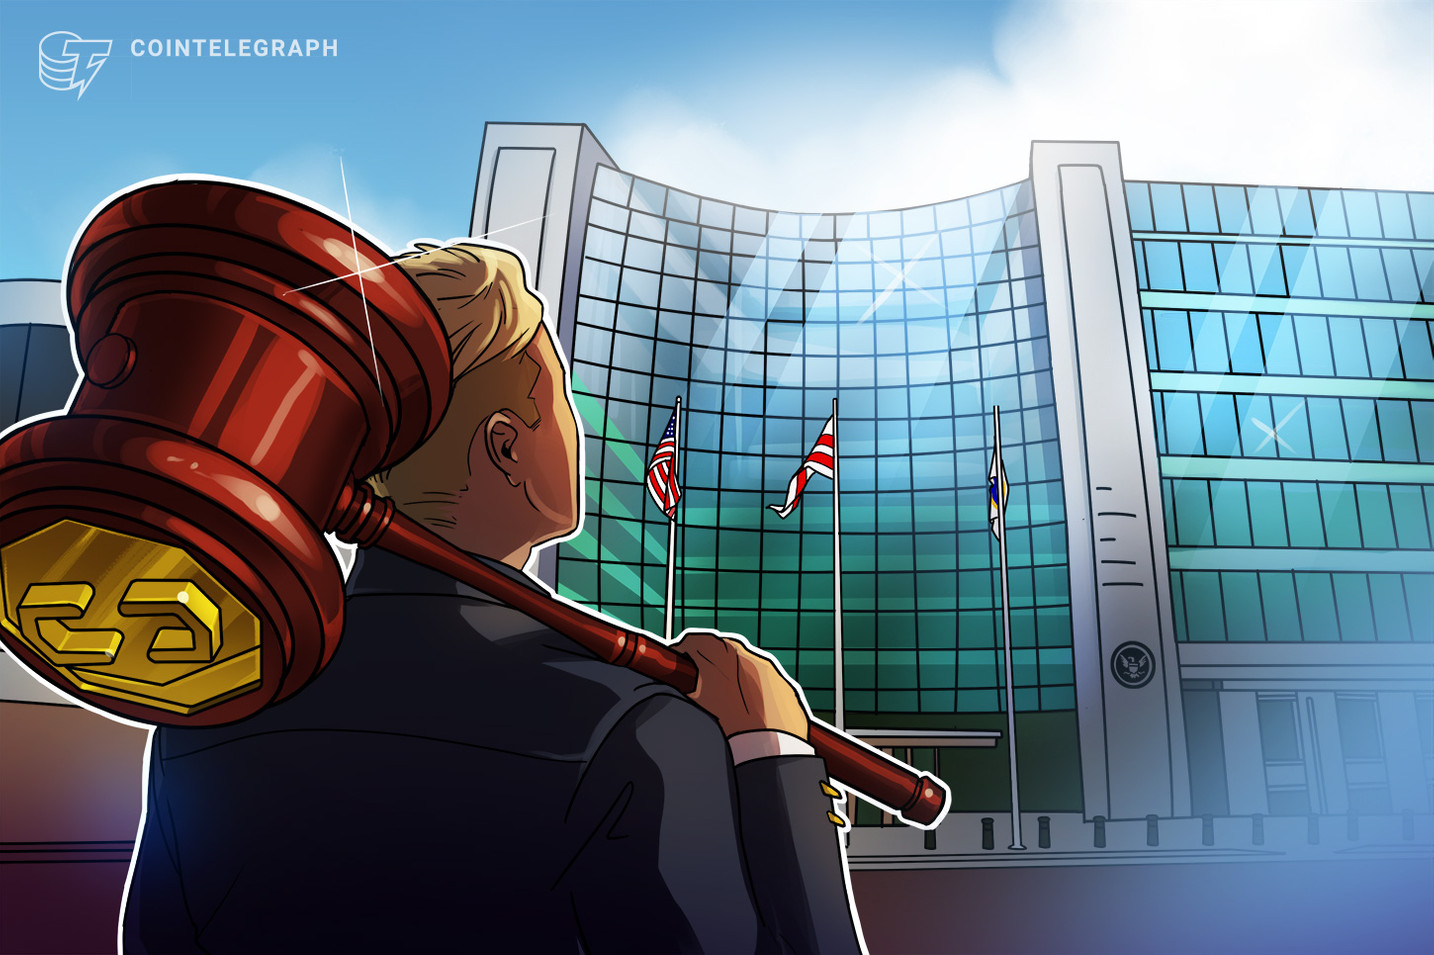 US SEC Imposes $250,000 Penalty, Requires Return of up to $13M for Unregistered ICO